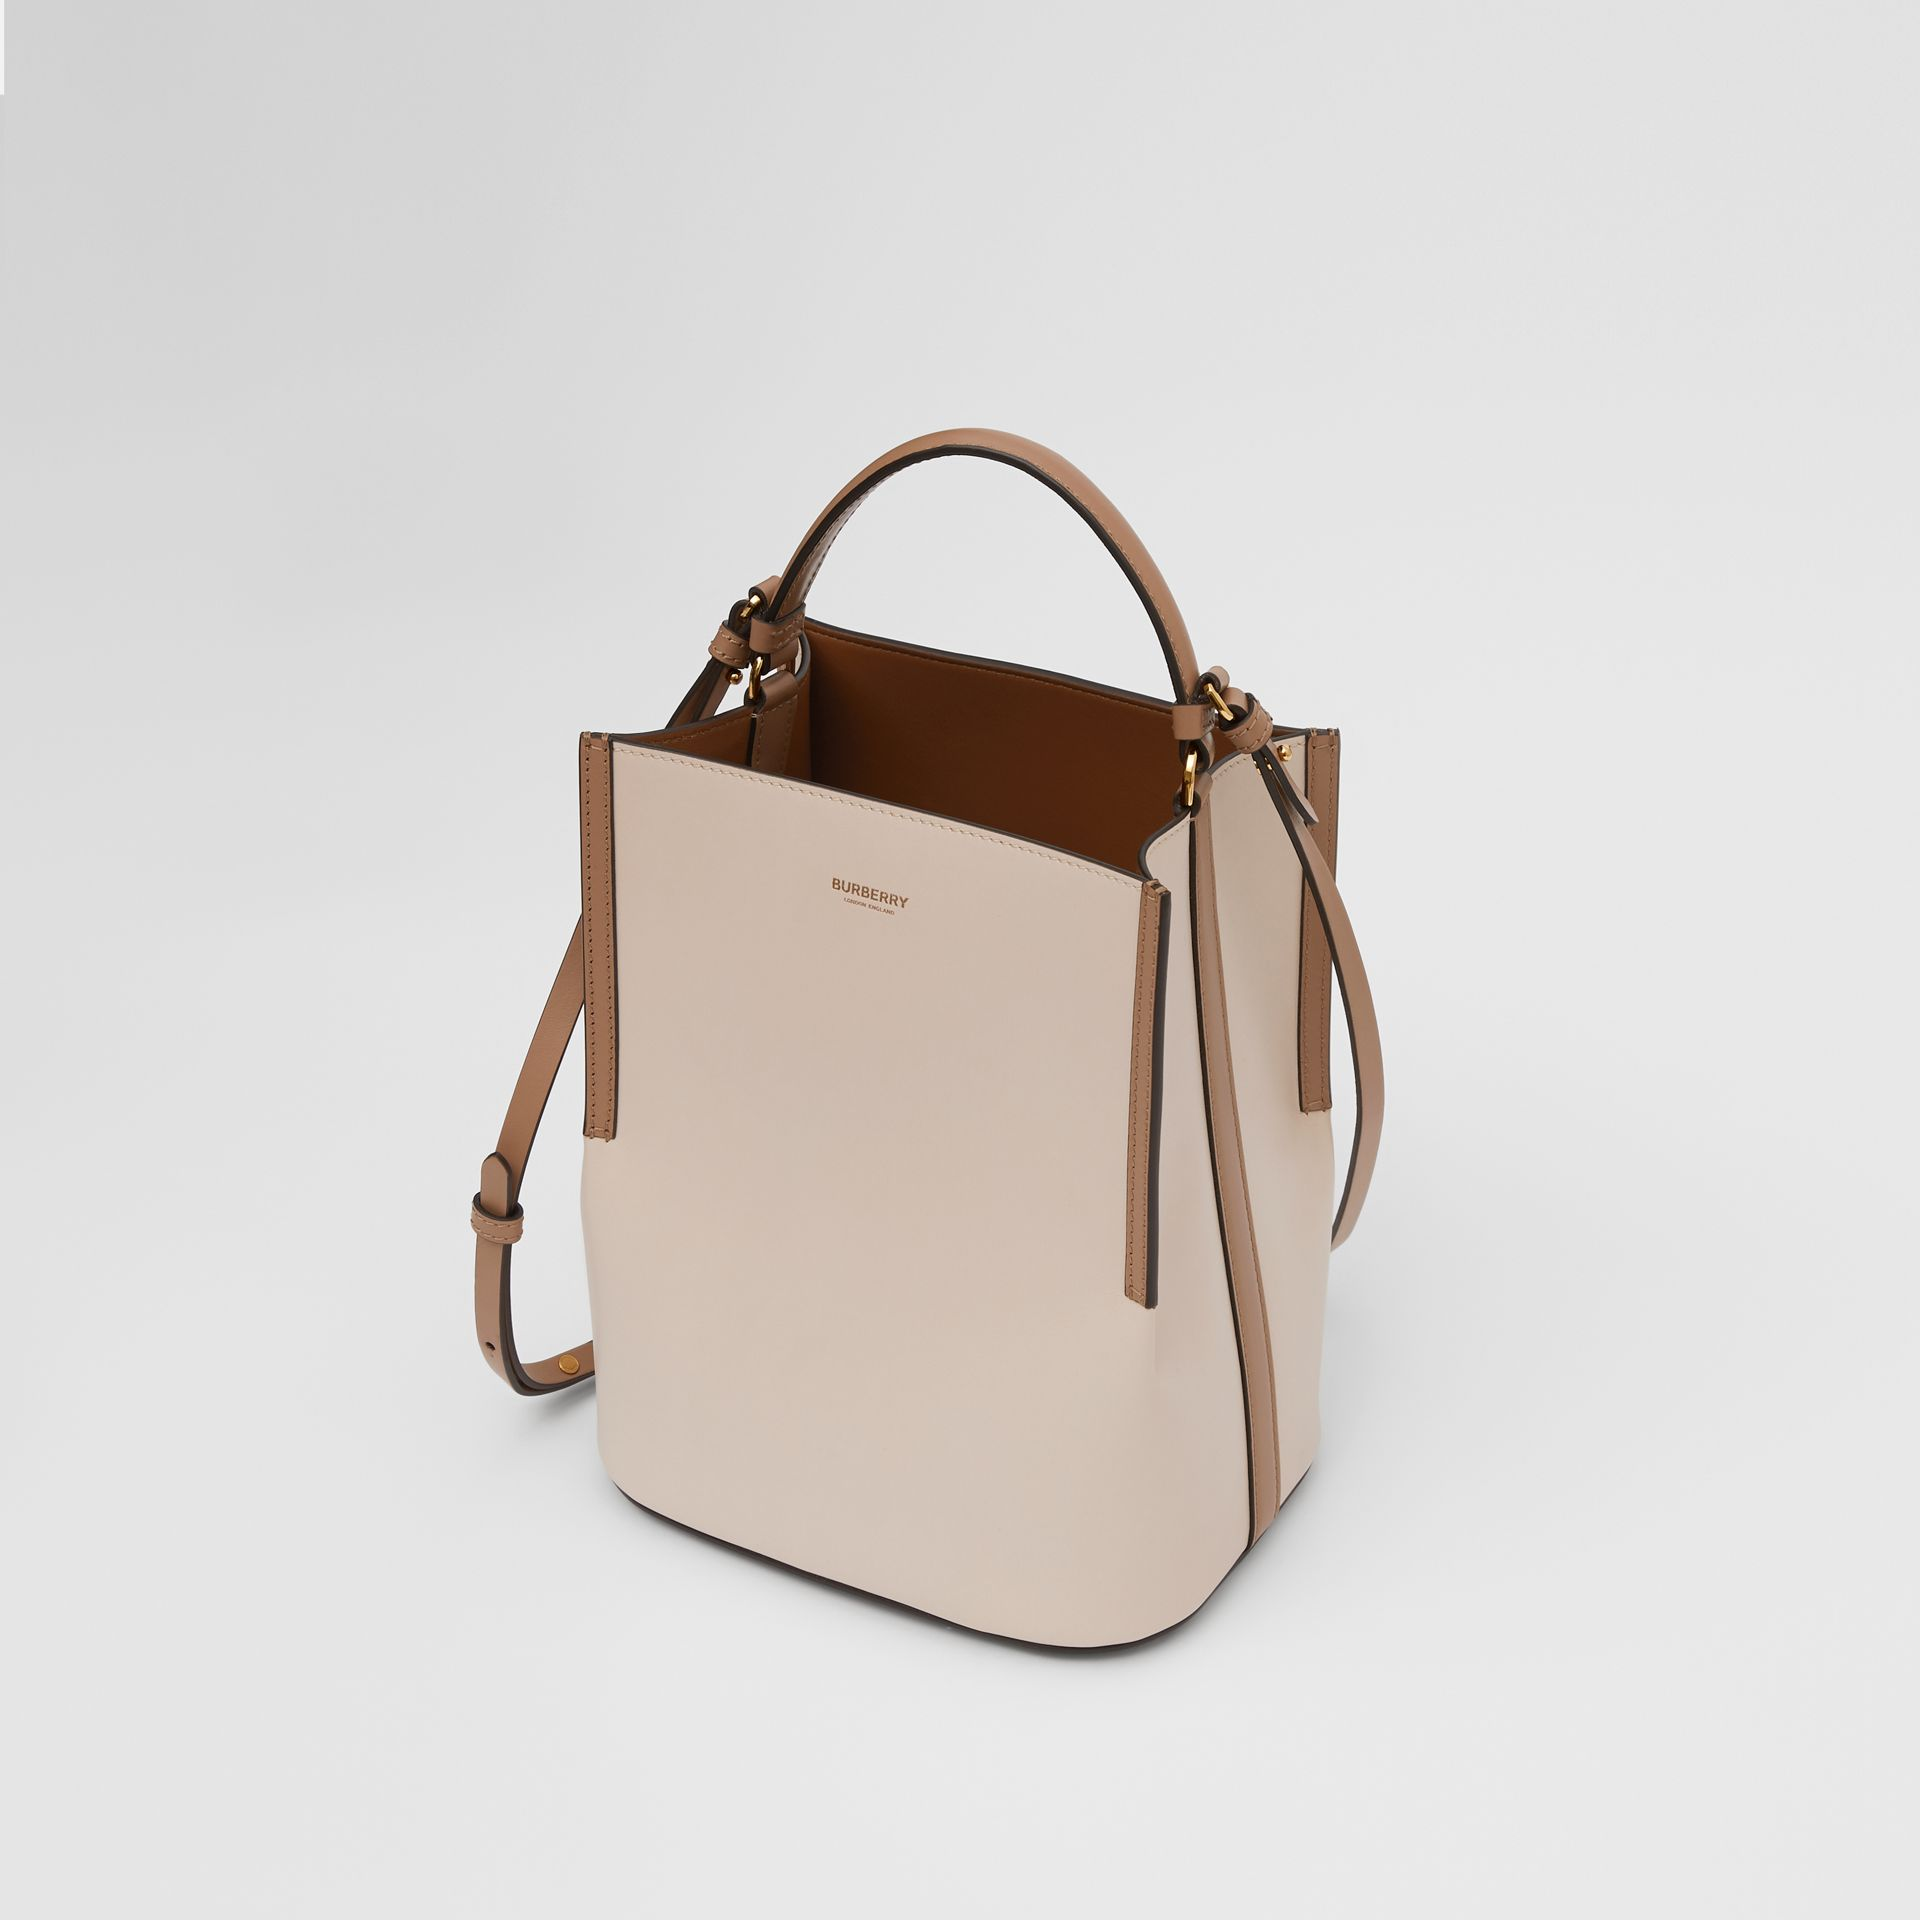 Small Two-tone Leather Peggy Bucket Bag in Buttermilk - Women | Burberry - gallery image 2